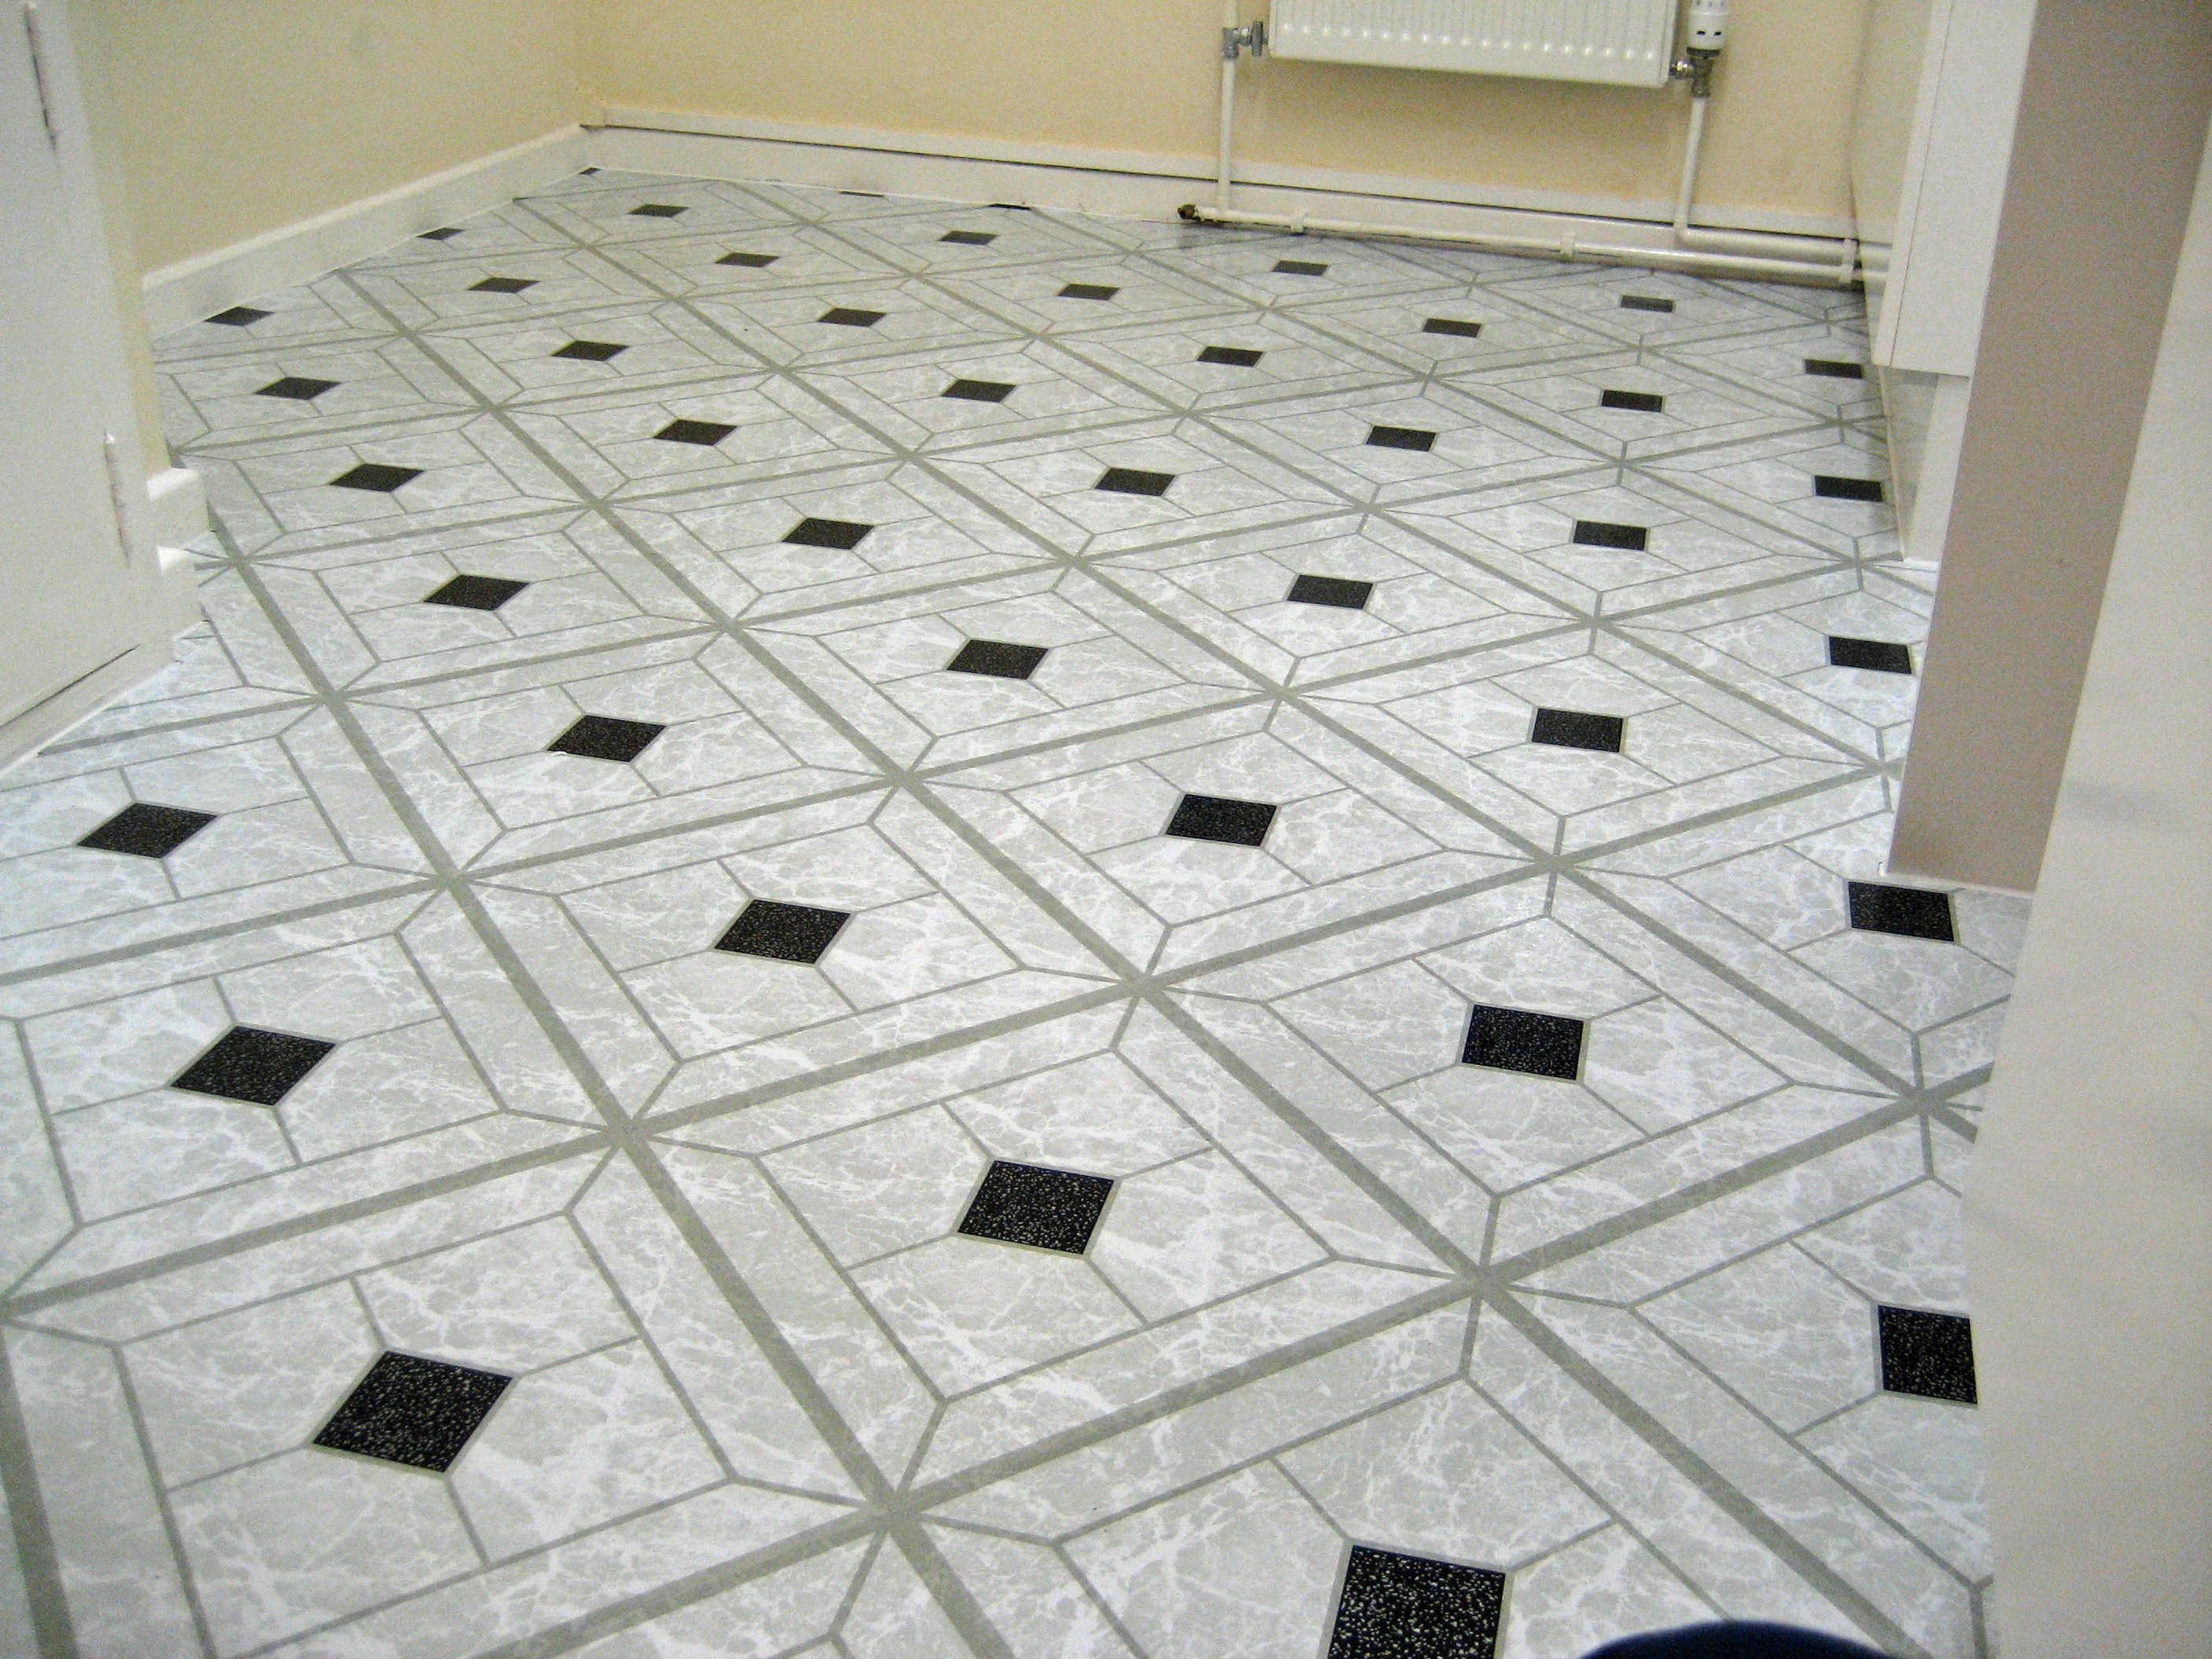 50 Vinyl Floor Tiles Blackwhite Diamond Self Stick Peel Stick